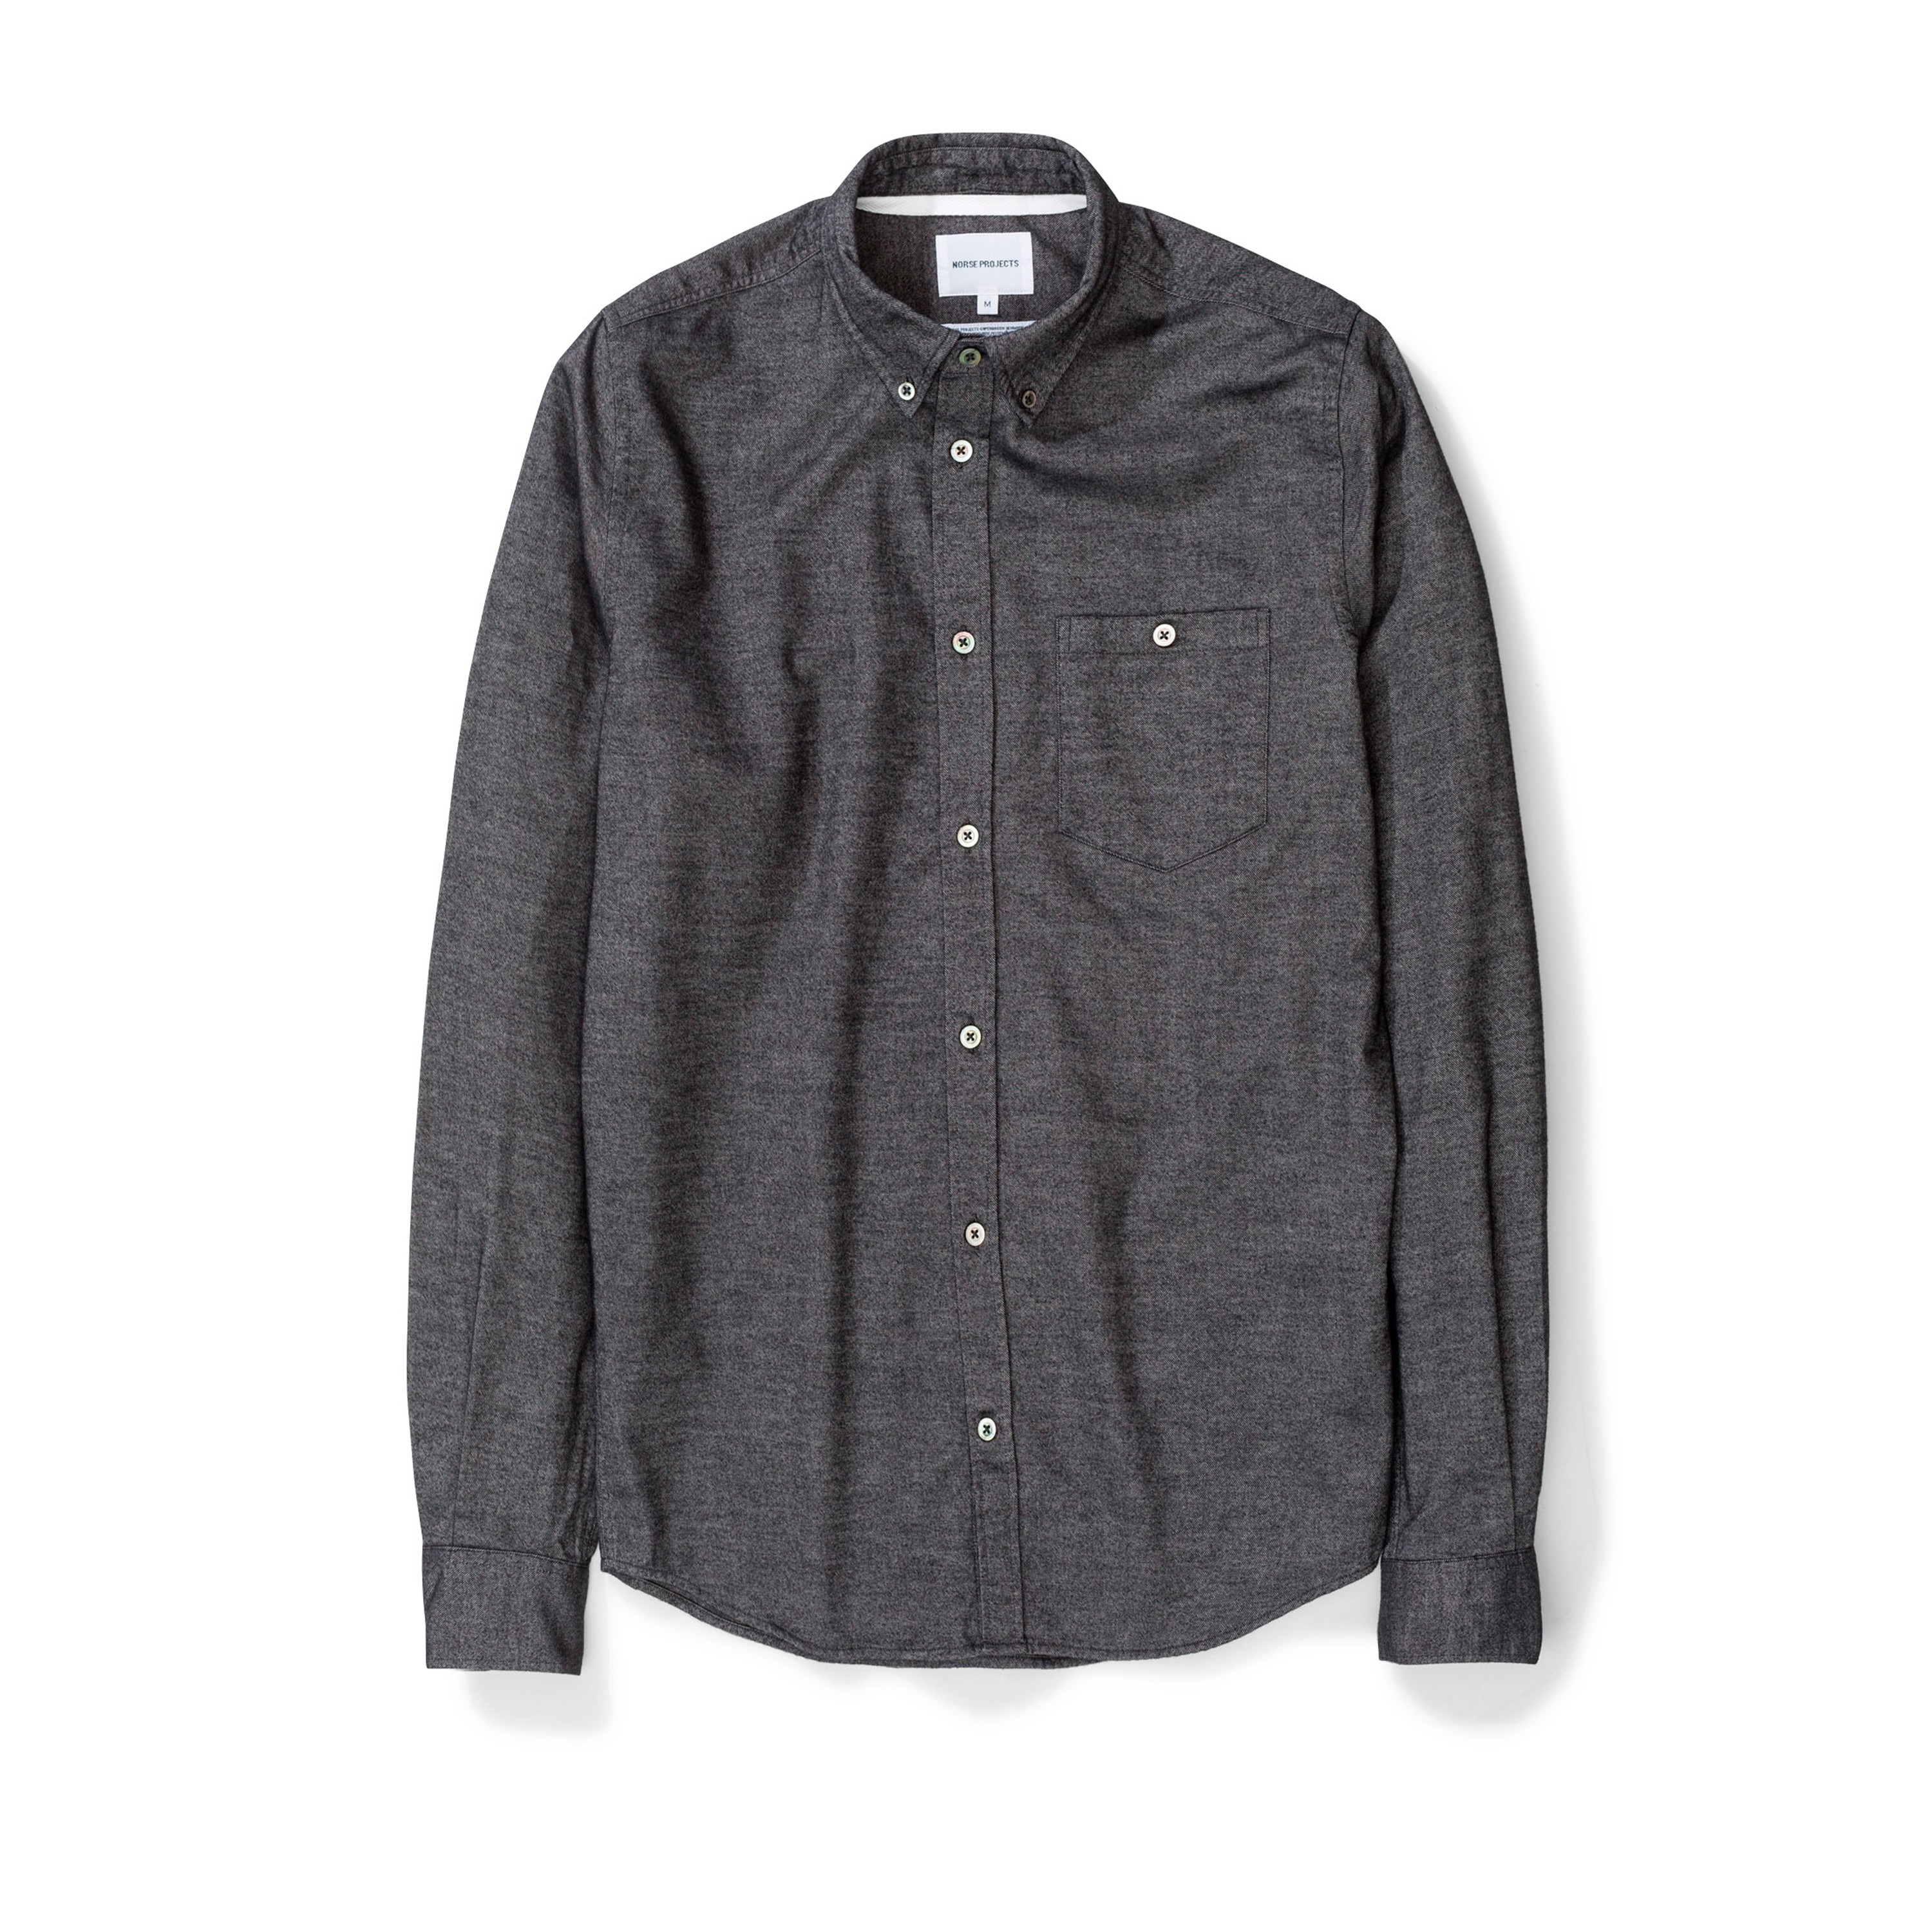 94f9258bfdc Norse Projects Anton Brushed Flannel Shirt (Magnet Grey) - N40-0467 ...